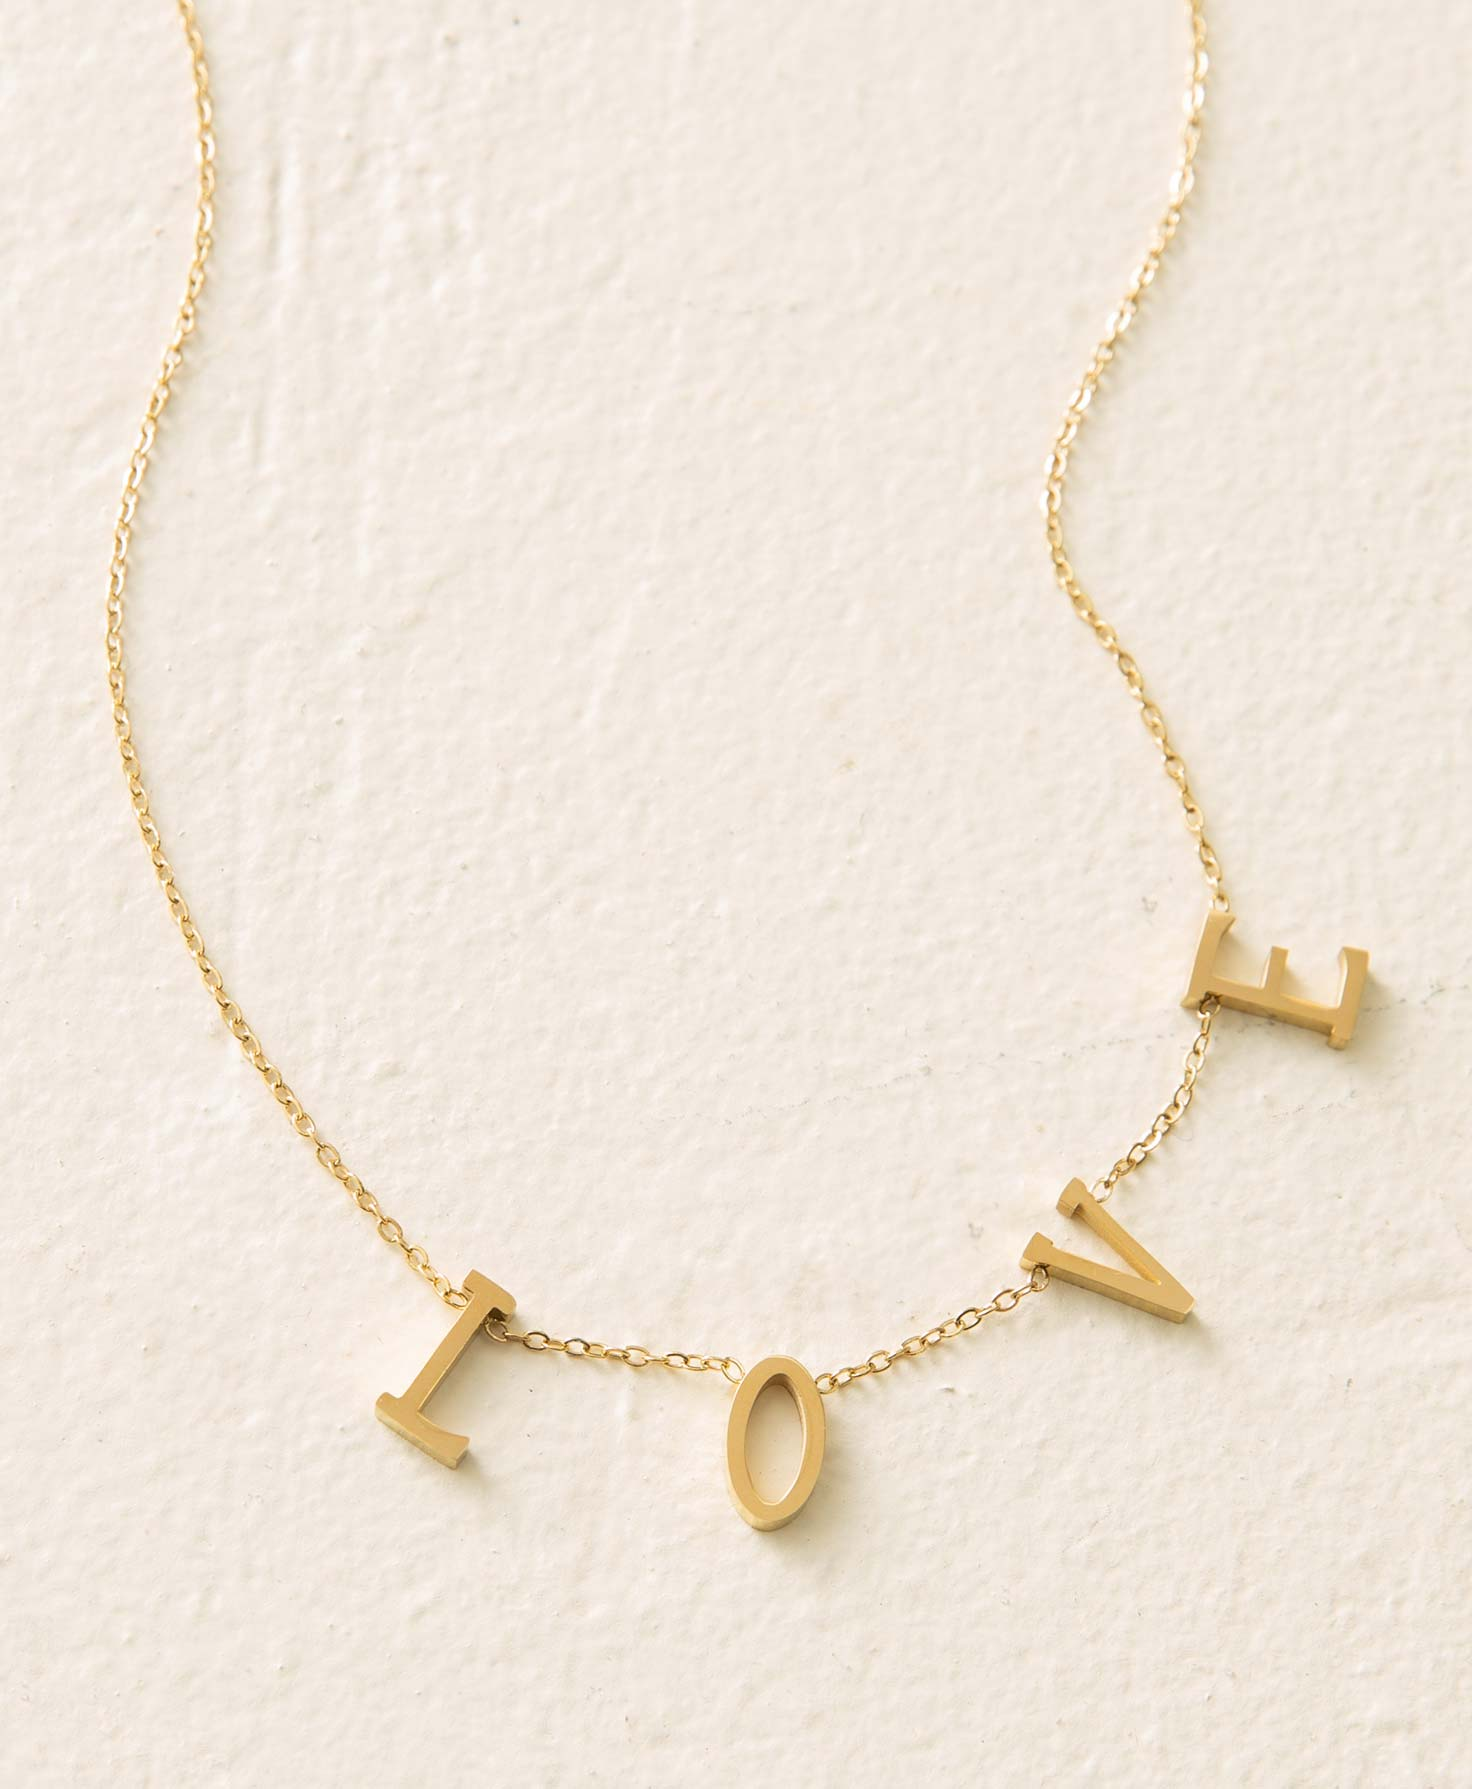 The Adored Necklace lays flat on a white surface. It features the letters L, O, V, and E, which are slightly three-dimensional and cut from gold plated stainless steel. The letters are affixed to a dainty gold chain. They are secured to the chain so they do not slide or move.